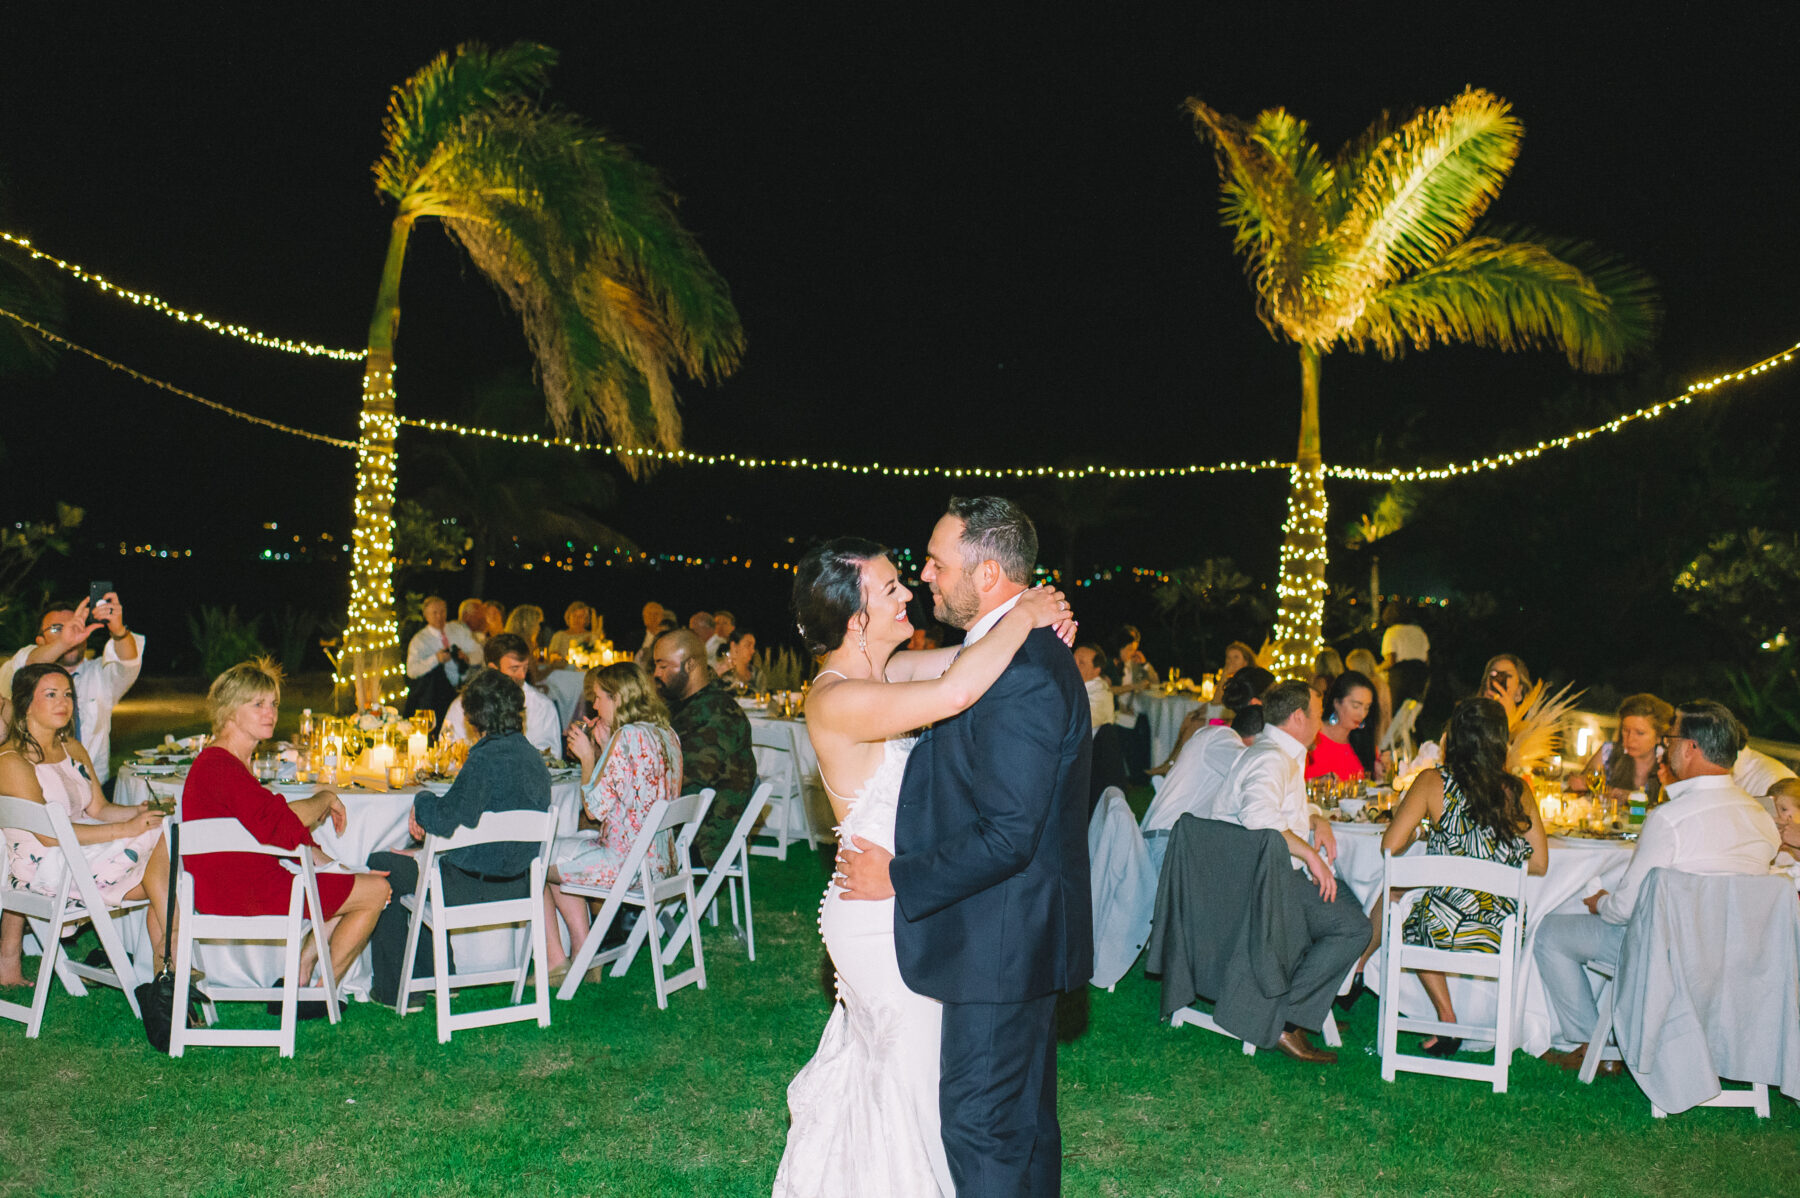 Wedding first dance: Intimate Caribbean Wedding by Details Nashville featured on Nashville Bride Guide